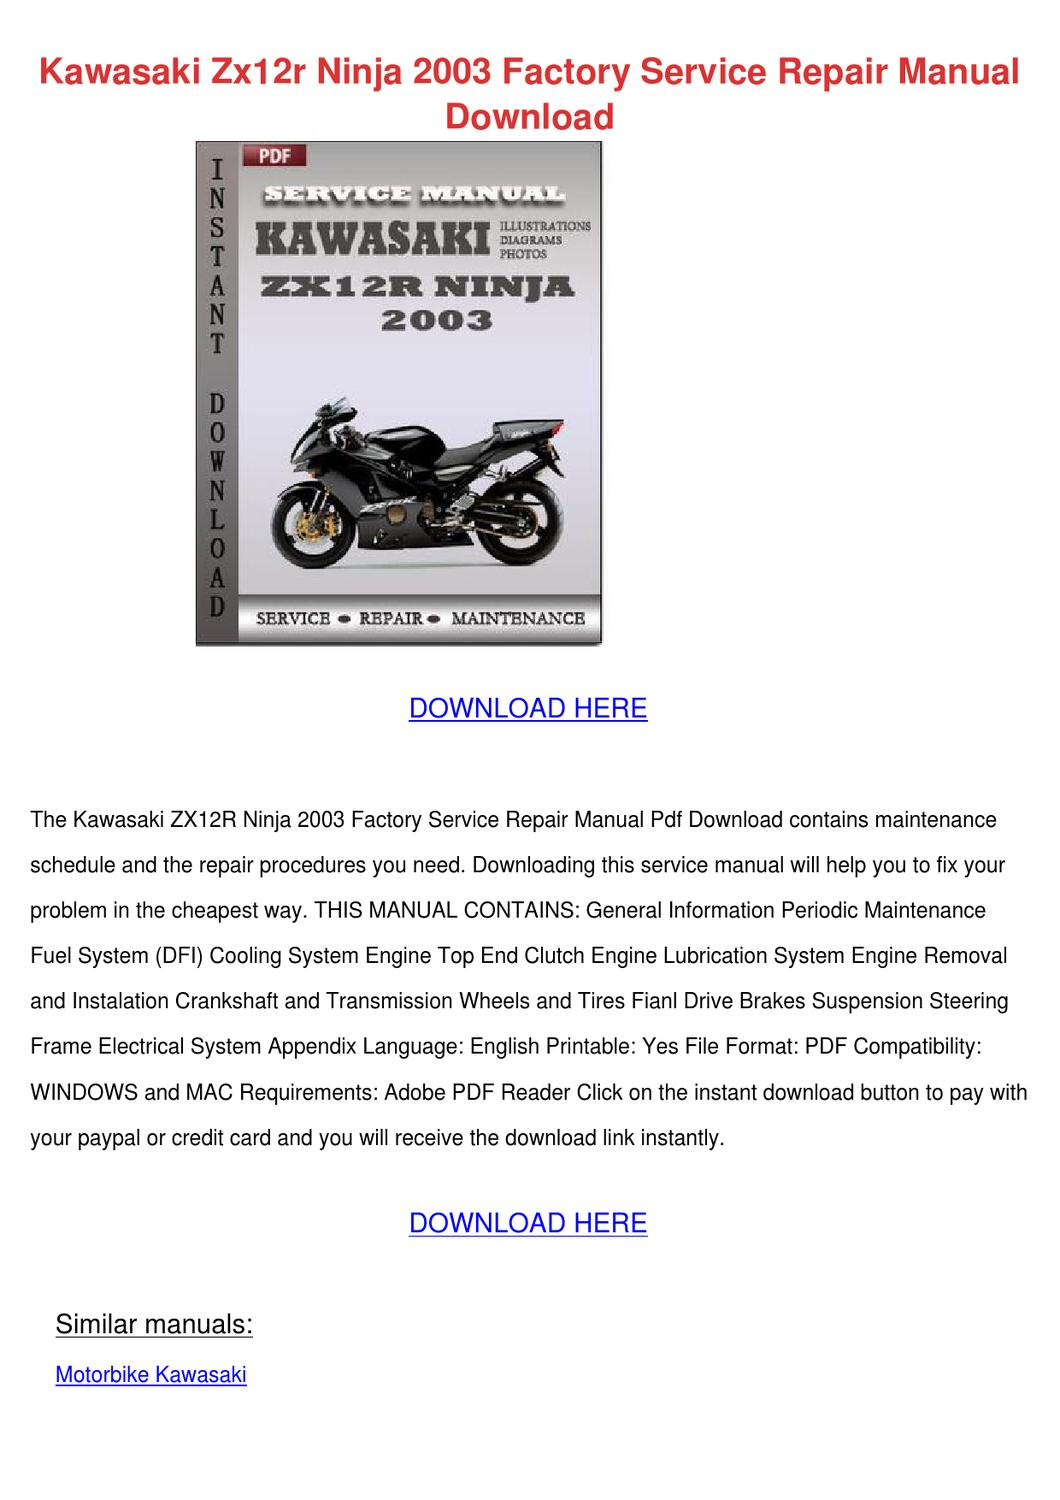 kawasaki zzr 250 service manual pdf download